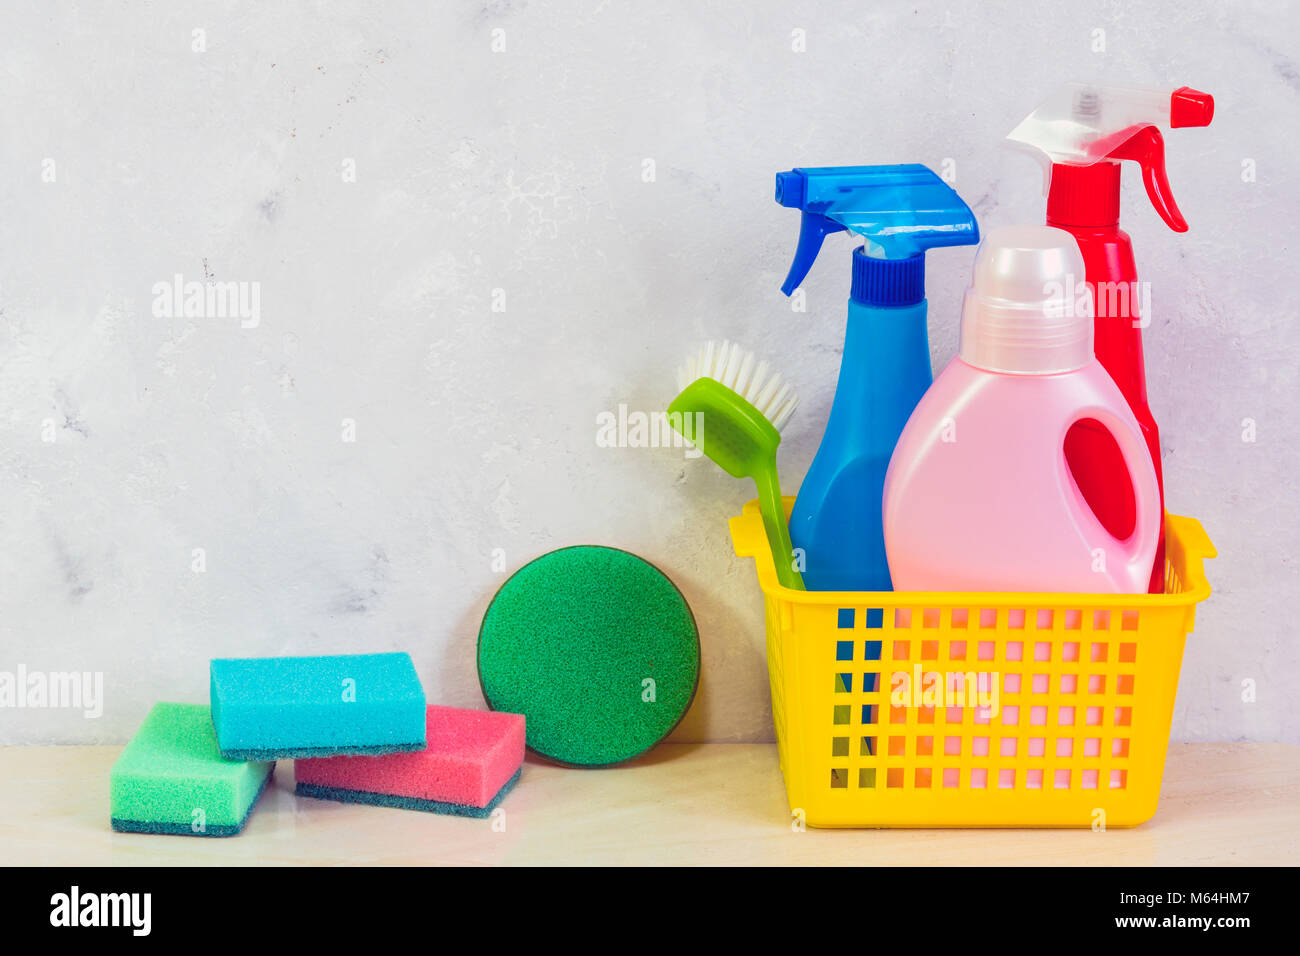 A cleaning kit with tools and products at home. Day of cleanliness. - Stock Image